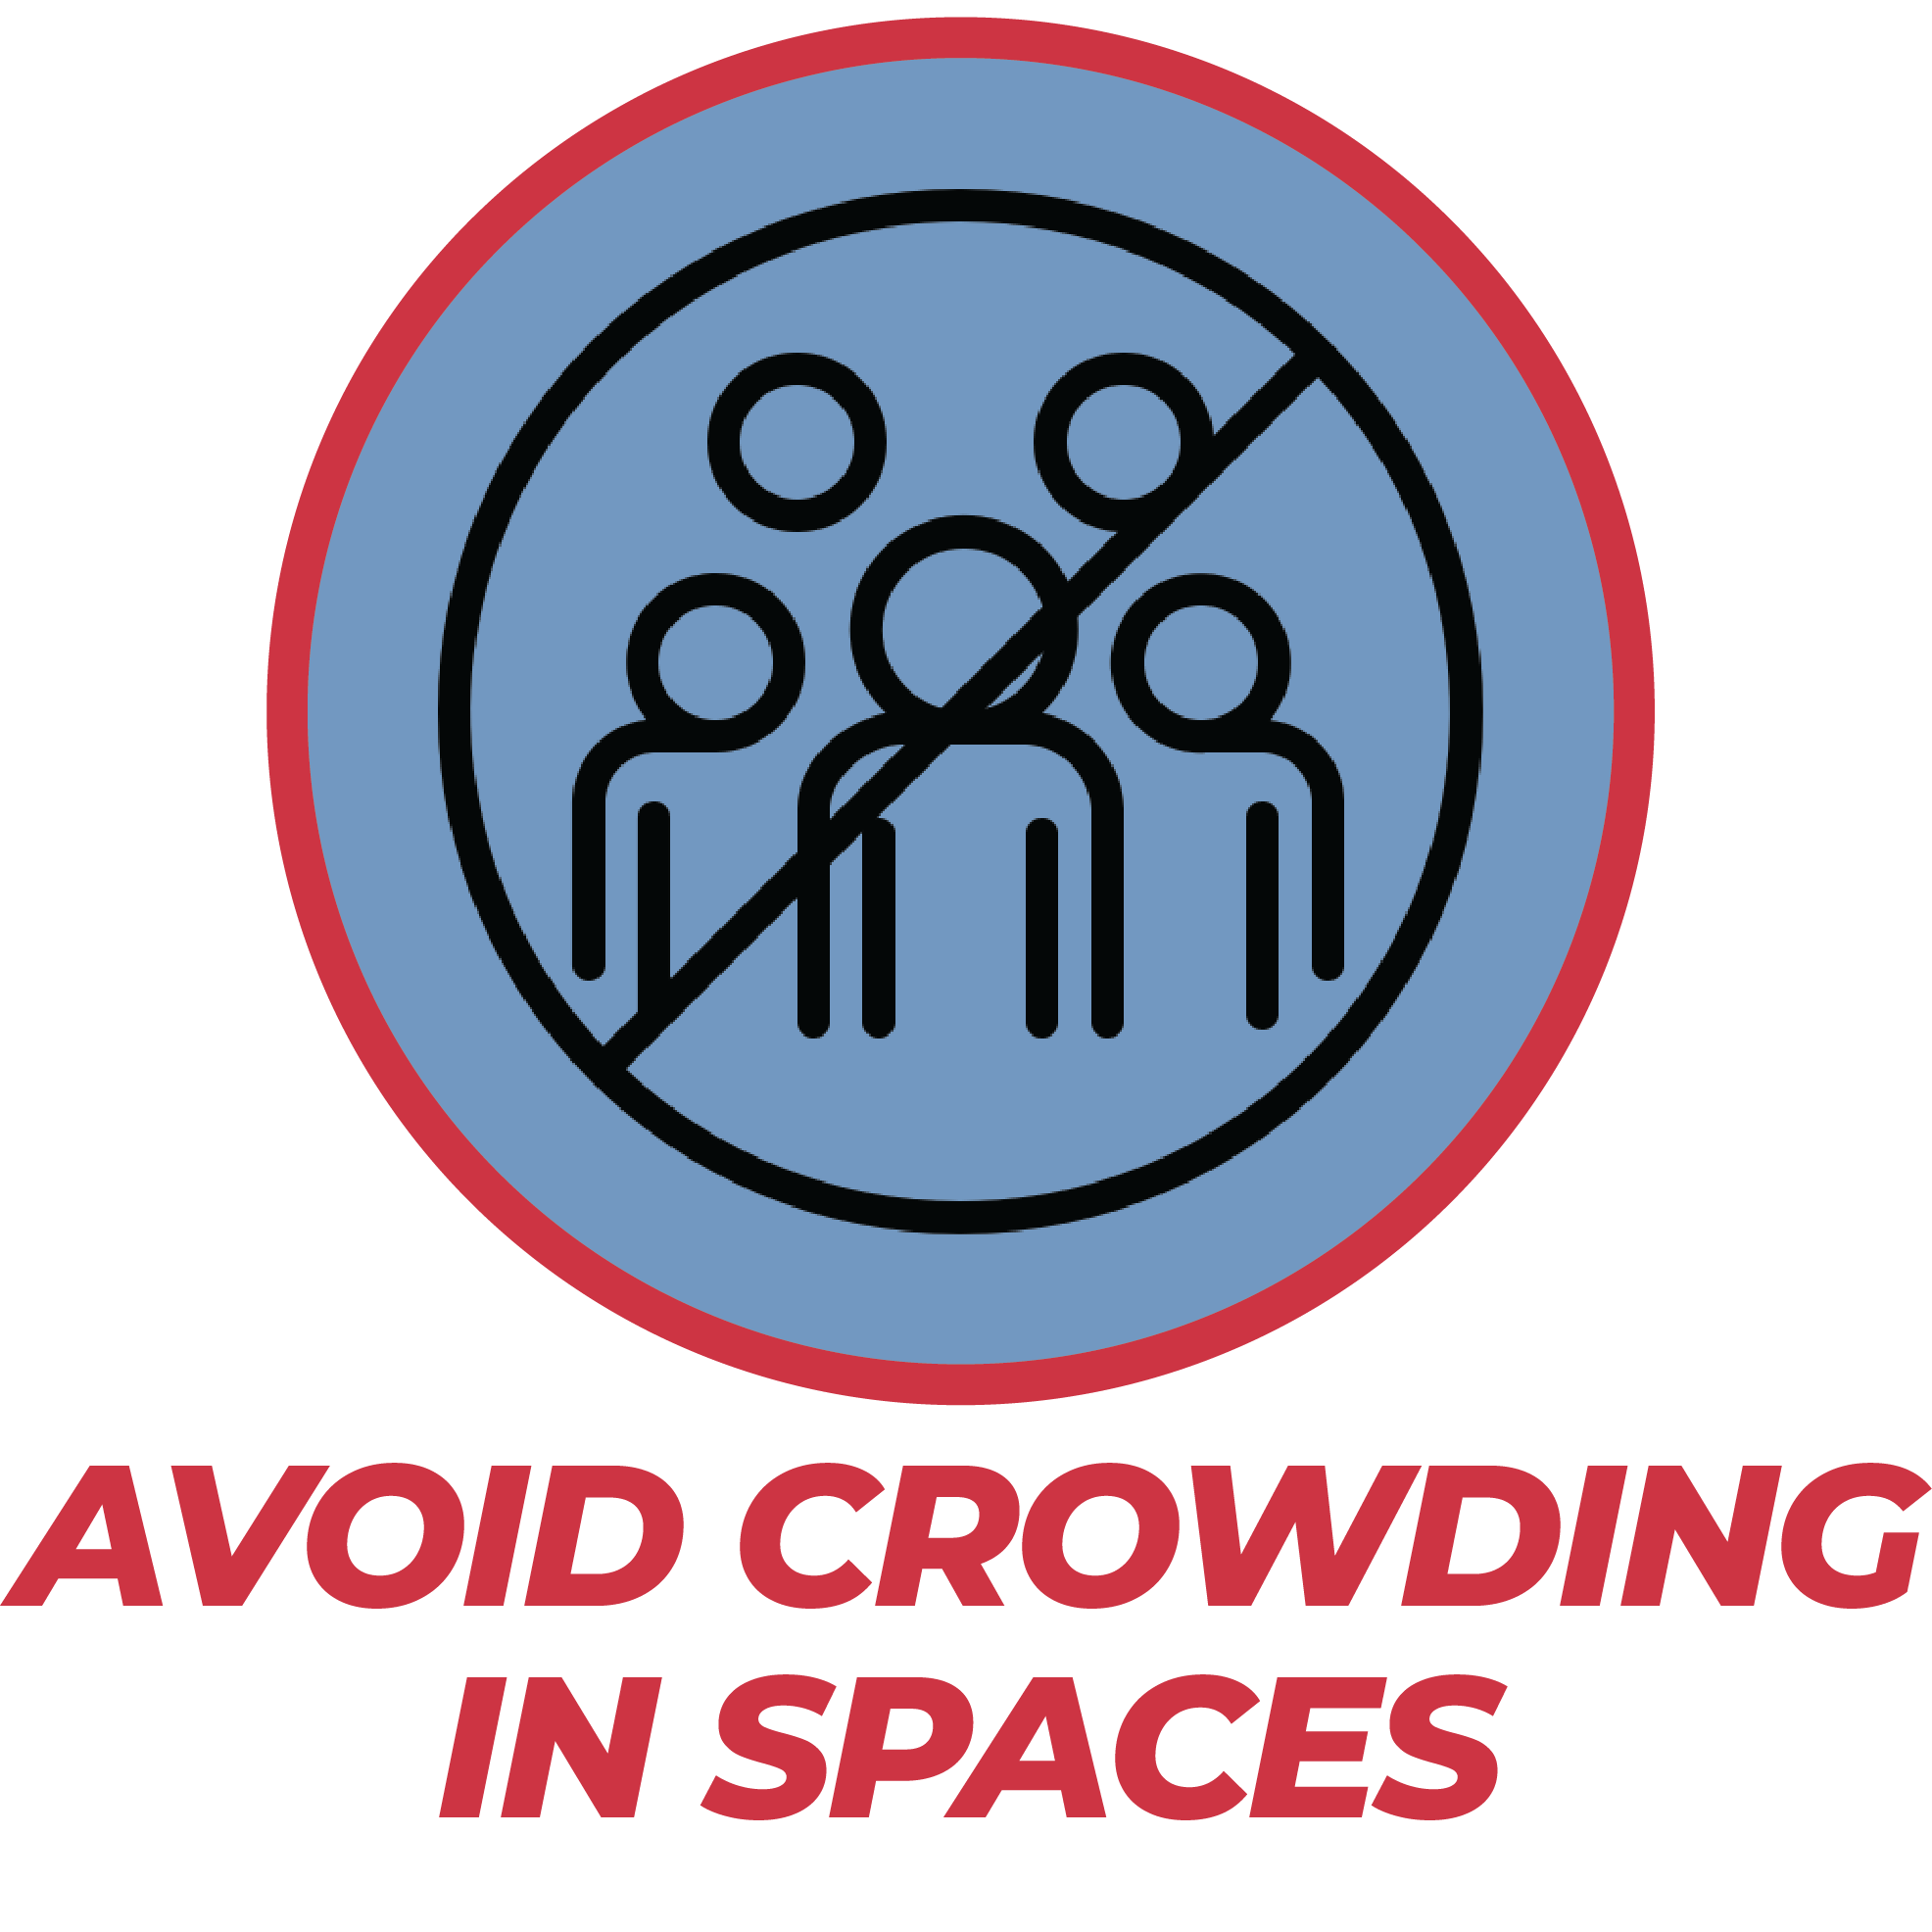 Avoid Crowding in Spaces